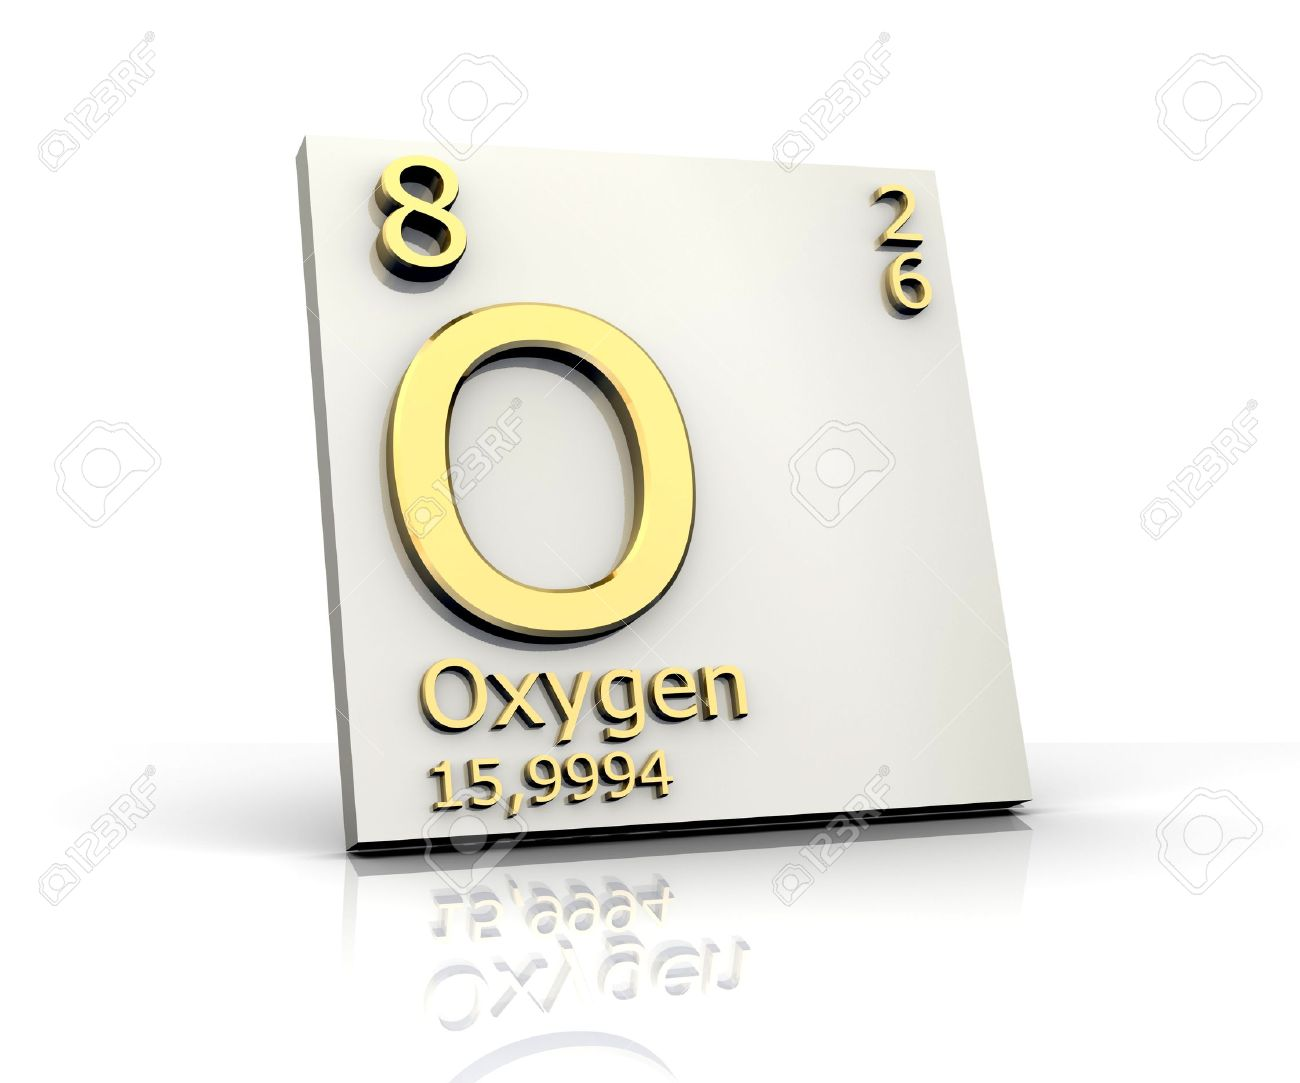 Oxygen form periodic table of elements stock photo picture and oxygen form periodic table of elements stock photo 4296432 urtaz Choice Image